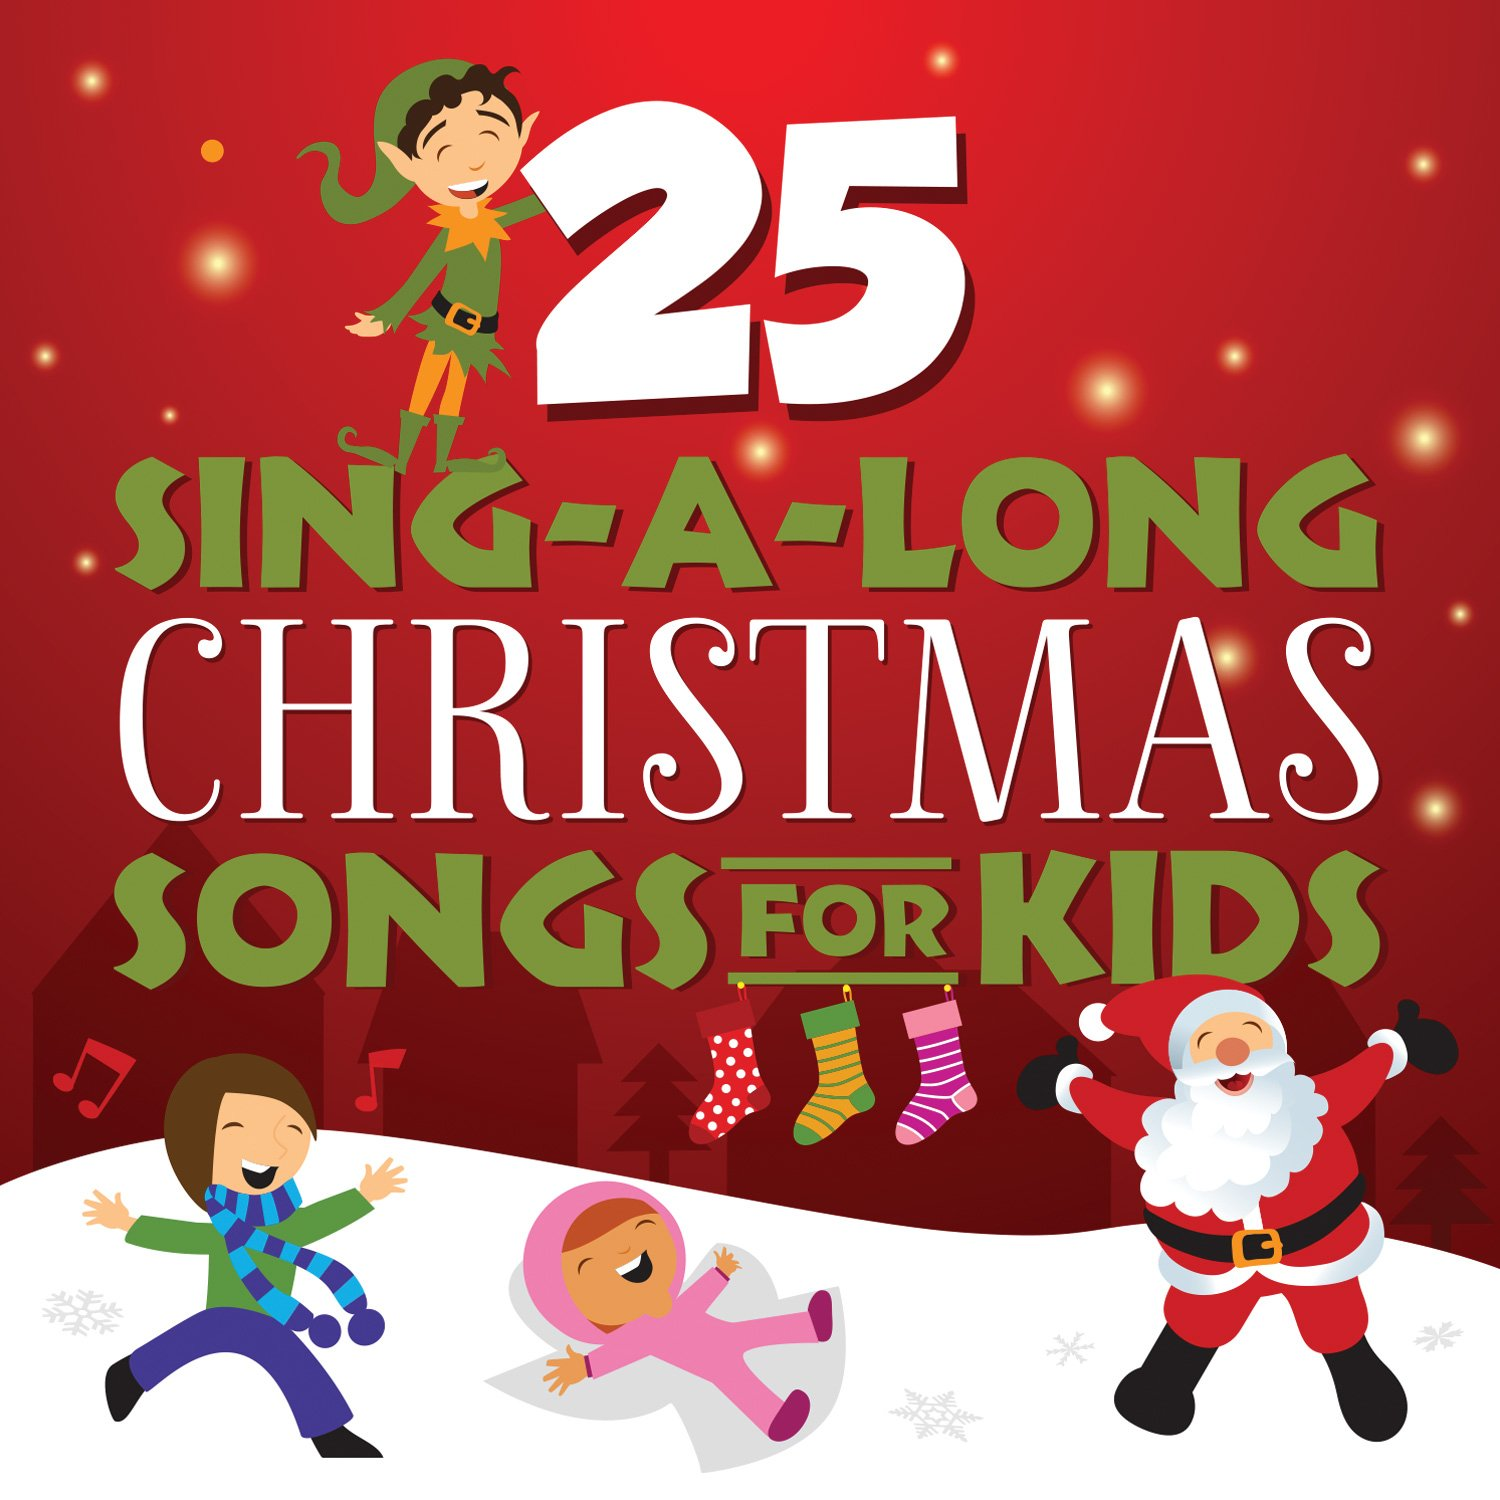 songtime kids 25 sing a long christmas songs for kids amazoncom music - Christmas Songs For Kids